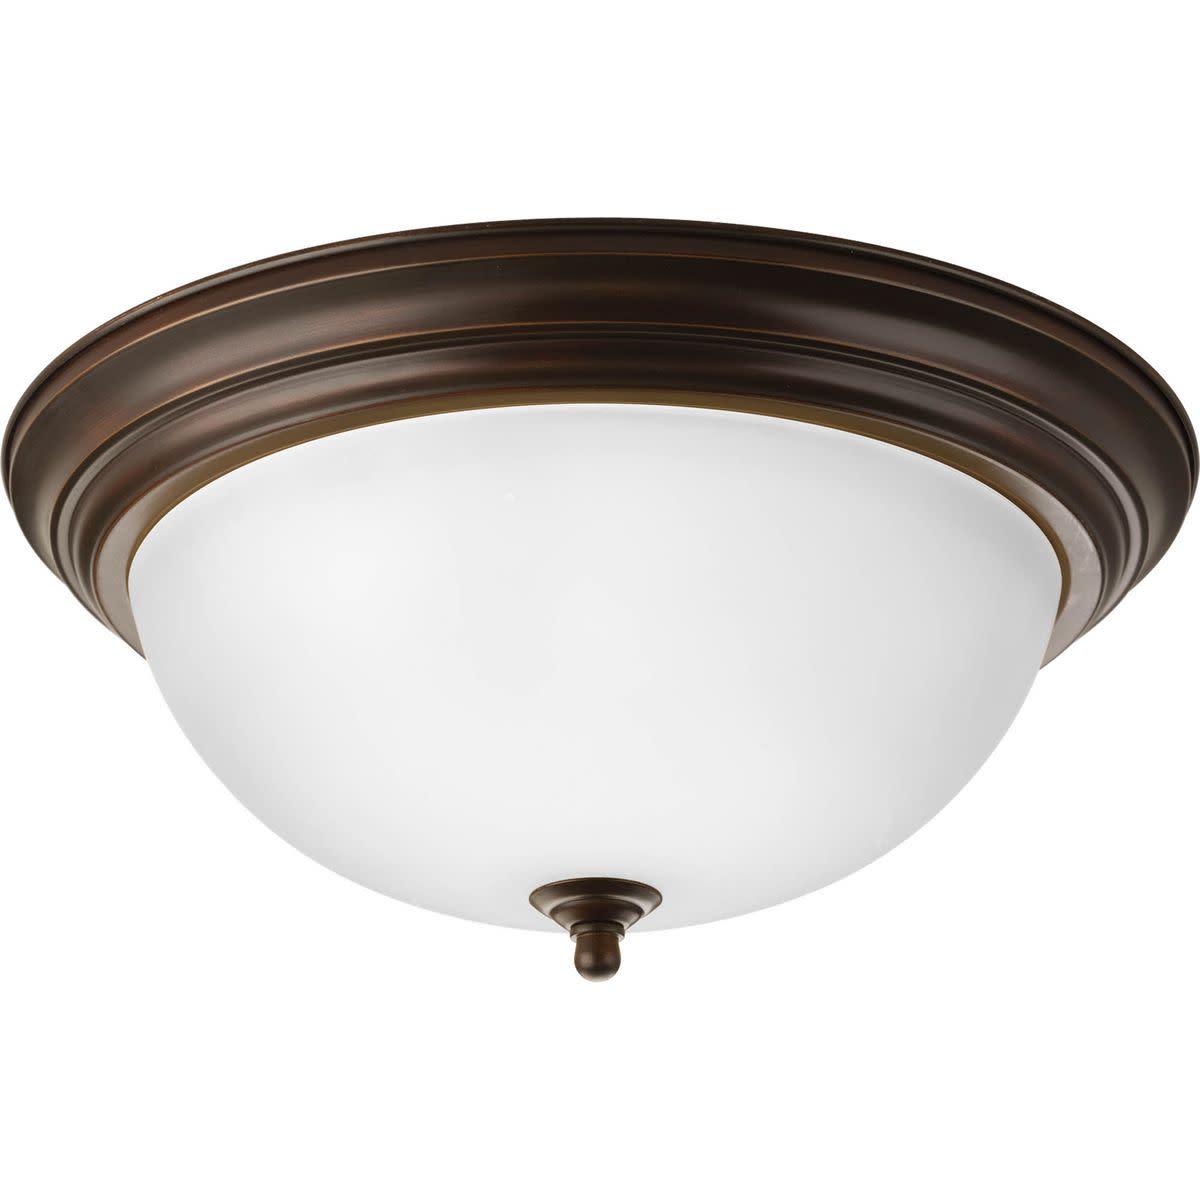 """Progress Lighting P3926-ET Dome 15"""" Wide 3 Light Flush Mount Ceiling Fixture with Bowl Shade"""